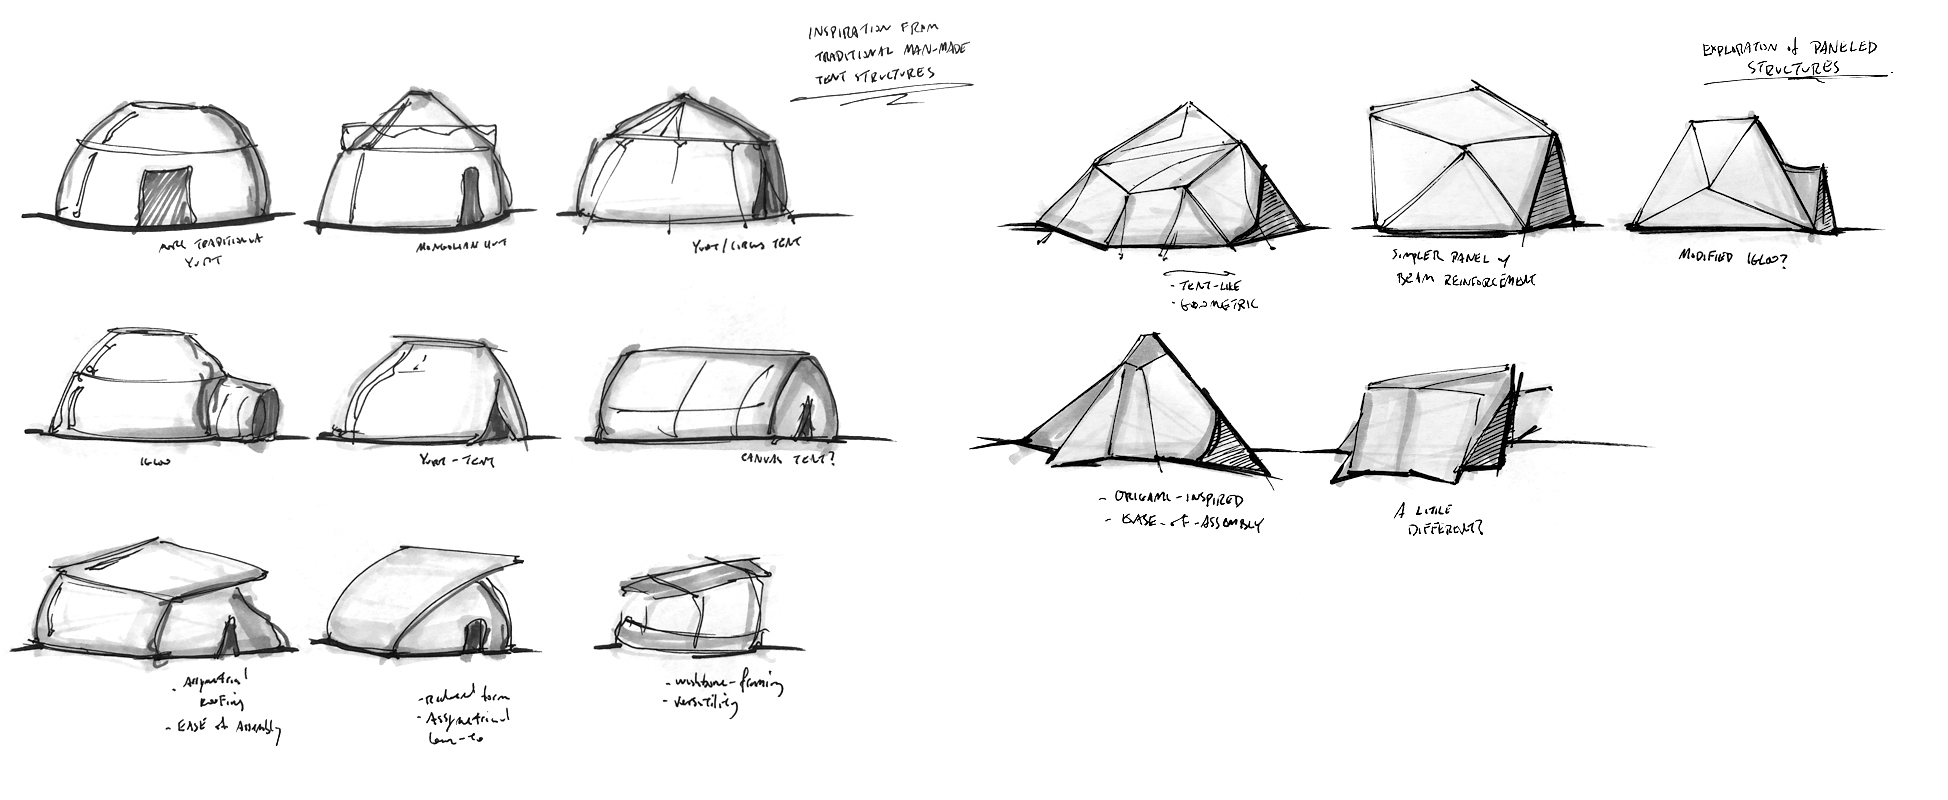 - In early stage concept ideation, I explored traditional structures for nomadic uses: yurts, tents, igloos, etc. Later stages I began to look at ways in which I could mimic these familiar forms with flat panel origami structures